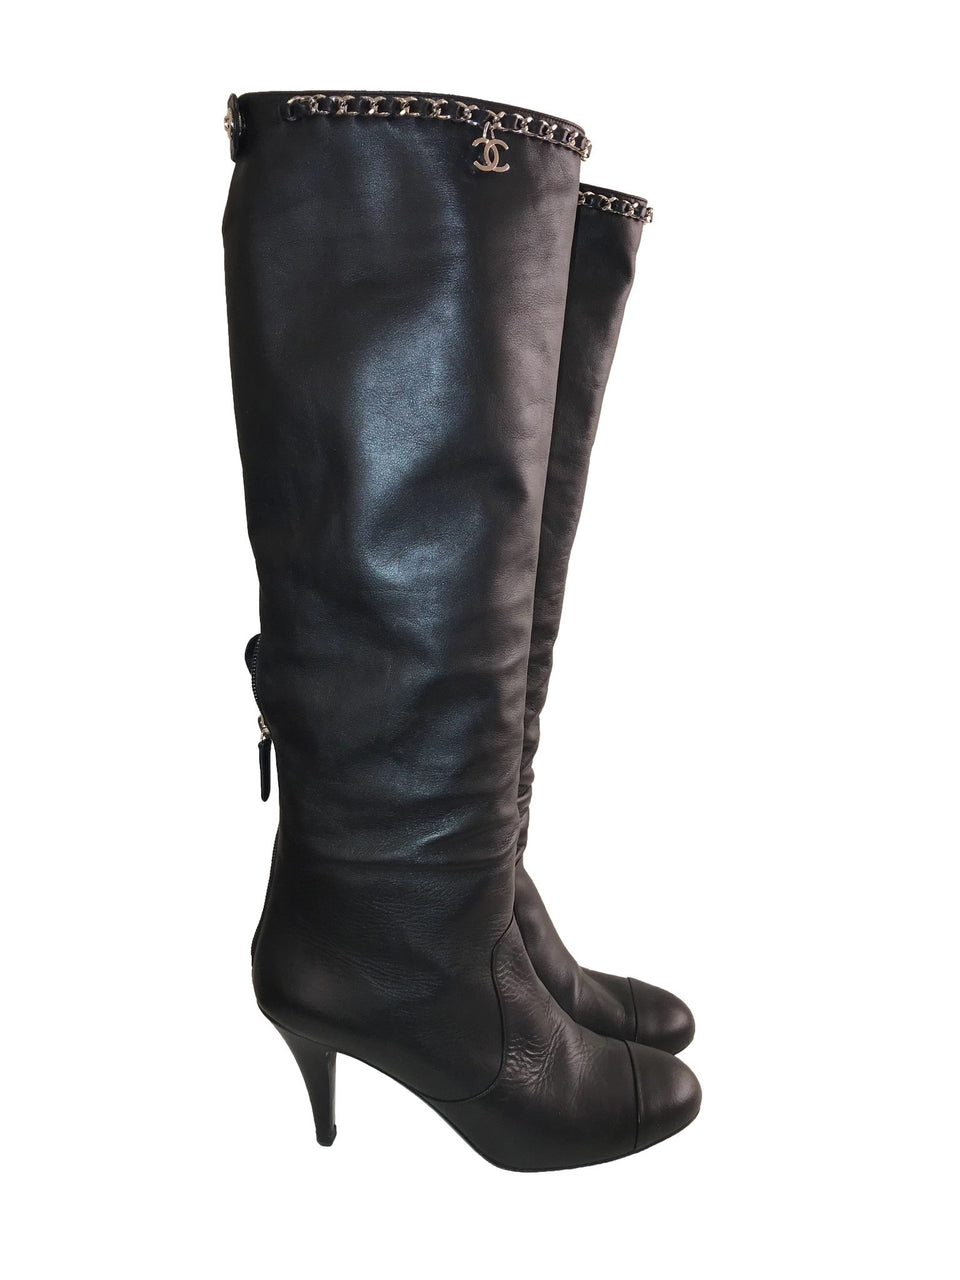 Leather Knee-High Boots with CC Chain at Top